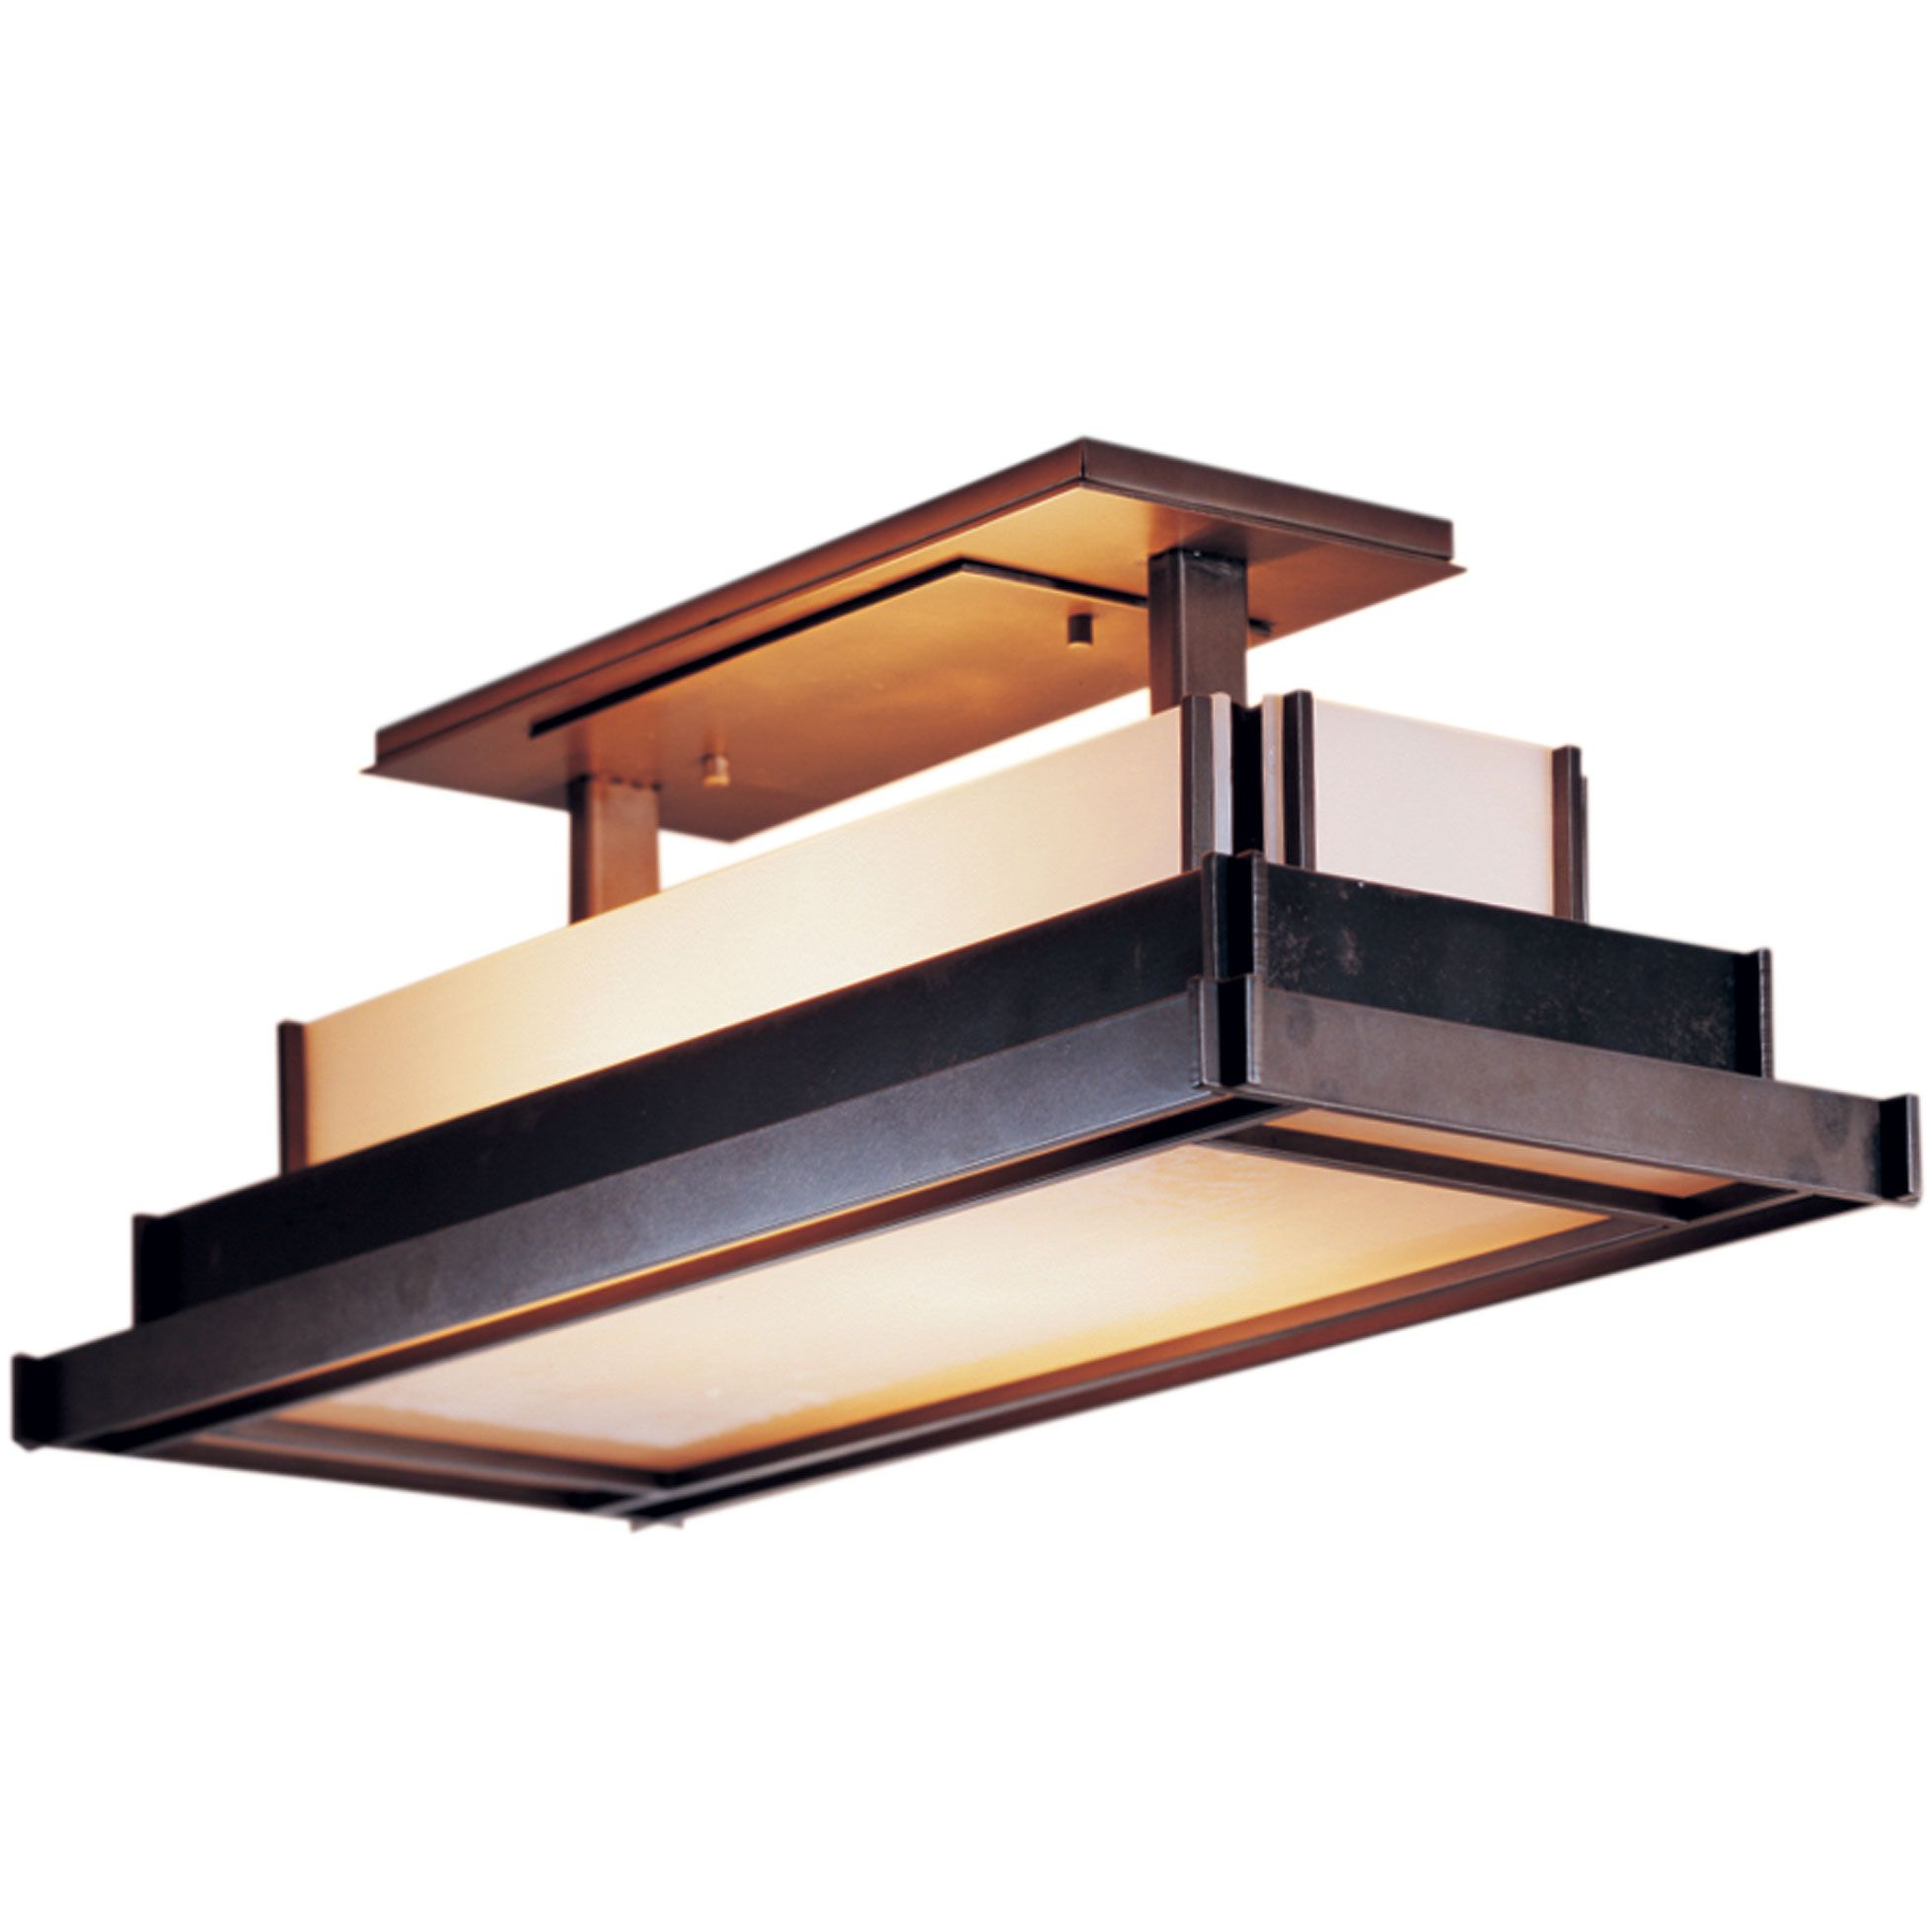 Steppe Rectangle Semi Flush Ceiling Light By Hubbardton Forge